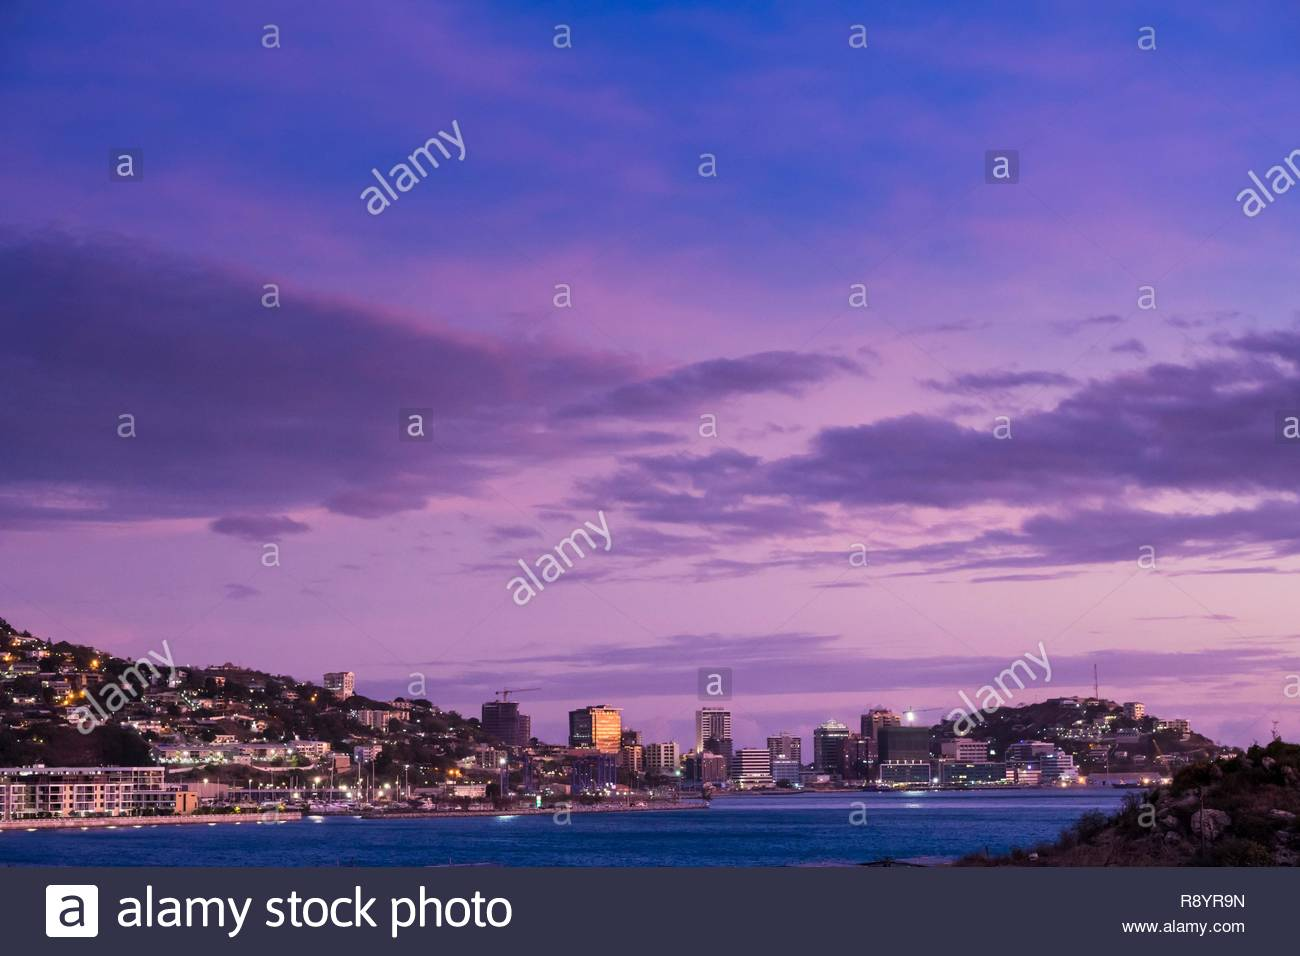 Papua-New-Guinea, National Capital District, Port Moresby, Port Moresby town - Stock Image